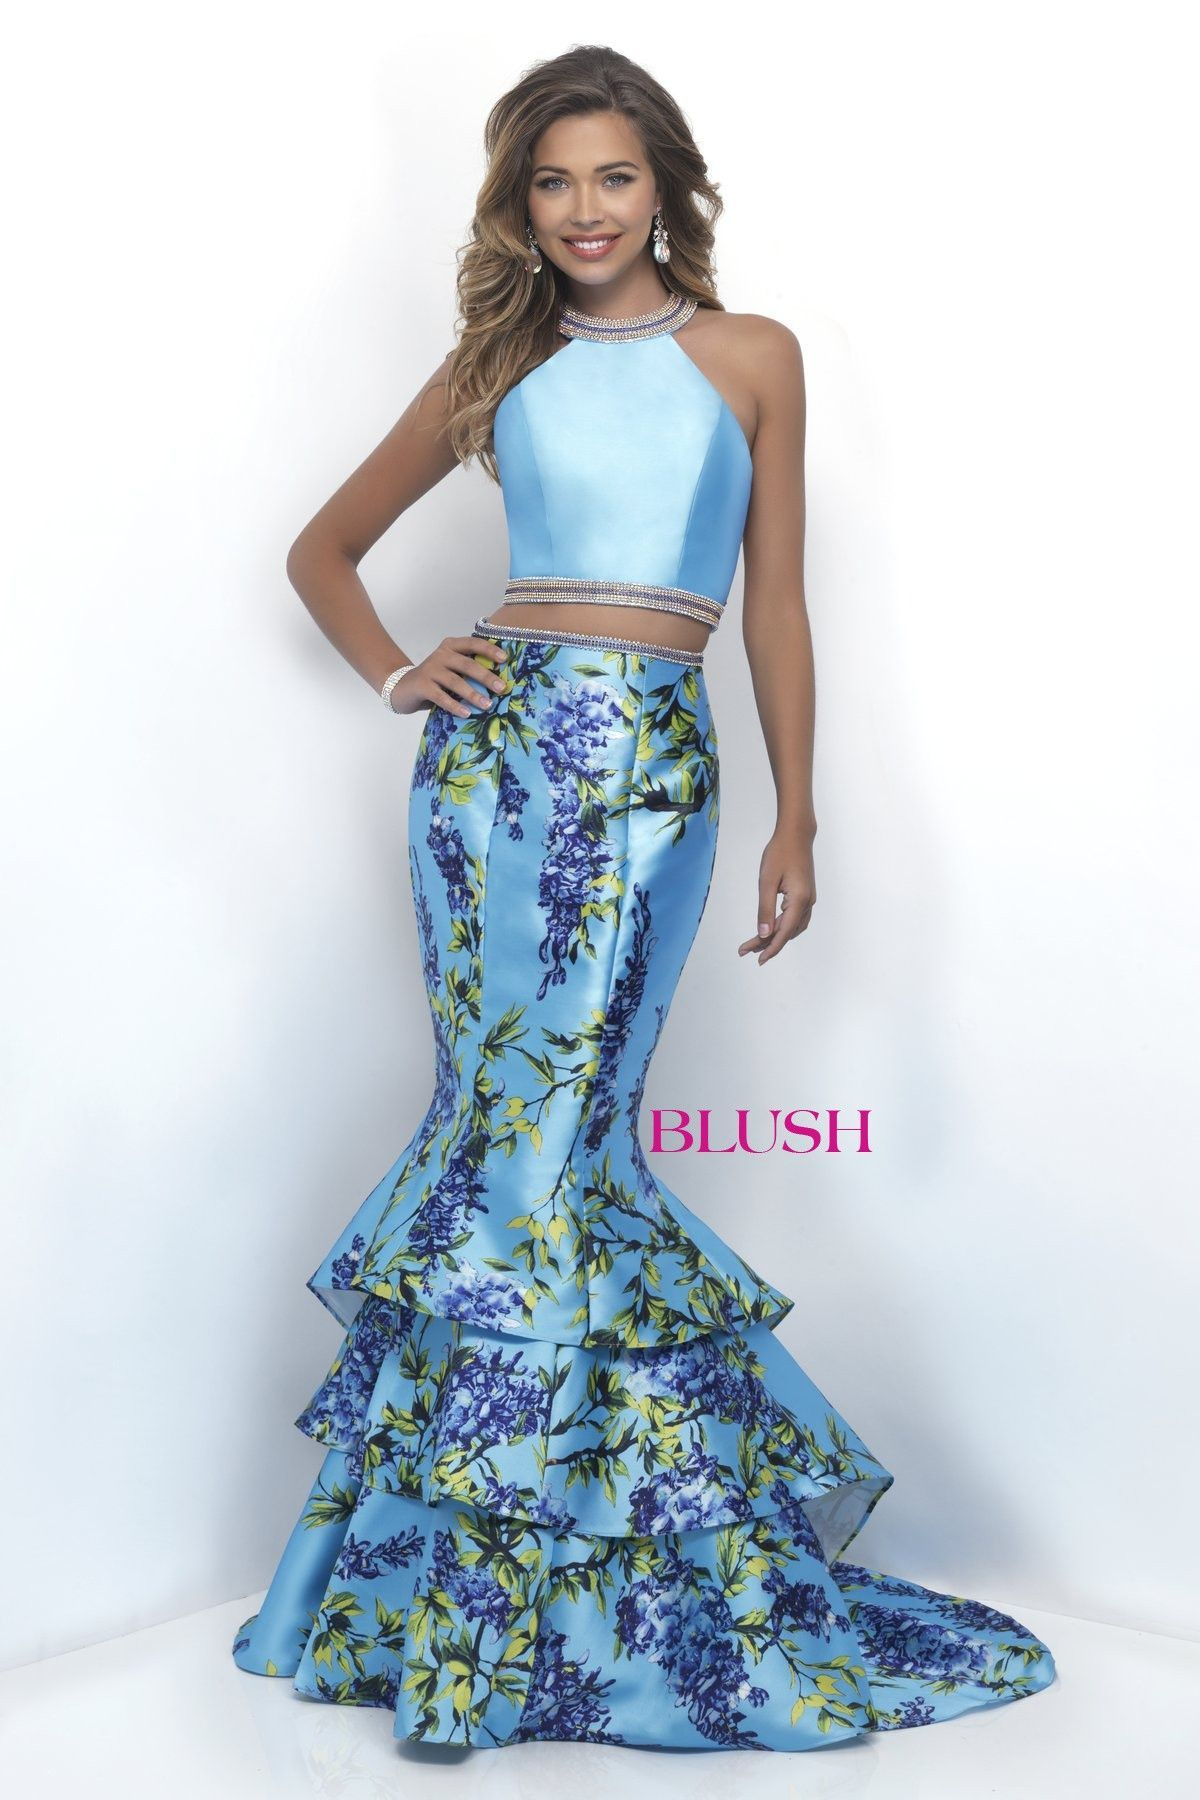 Blush Prom 11247 Sky Blue High Neck Tiered Mermaid Two Piece Prom Dress